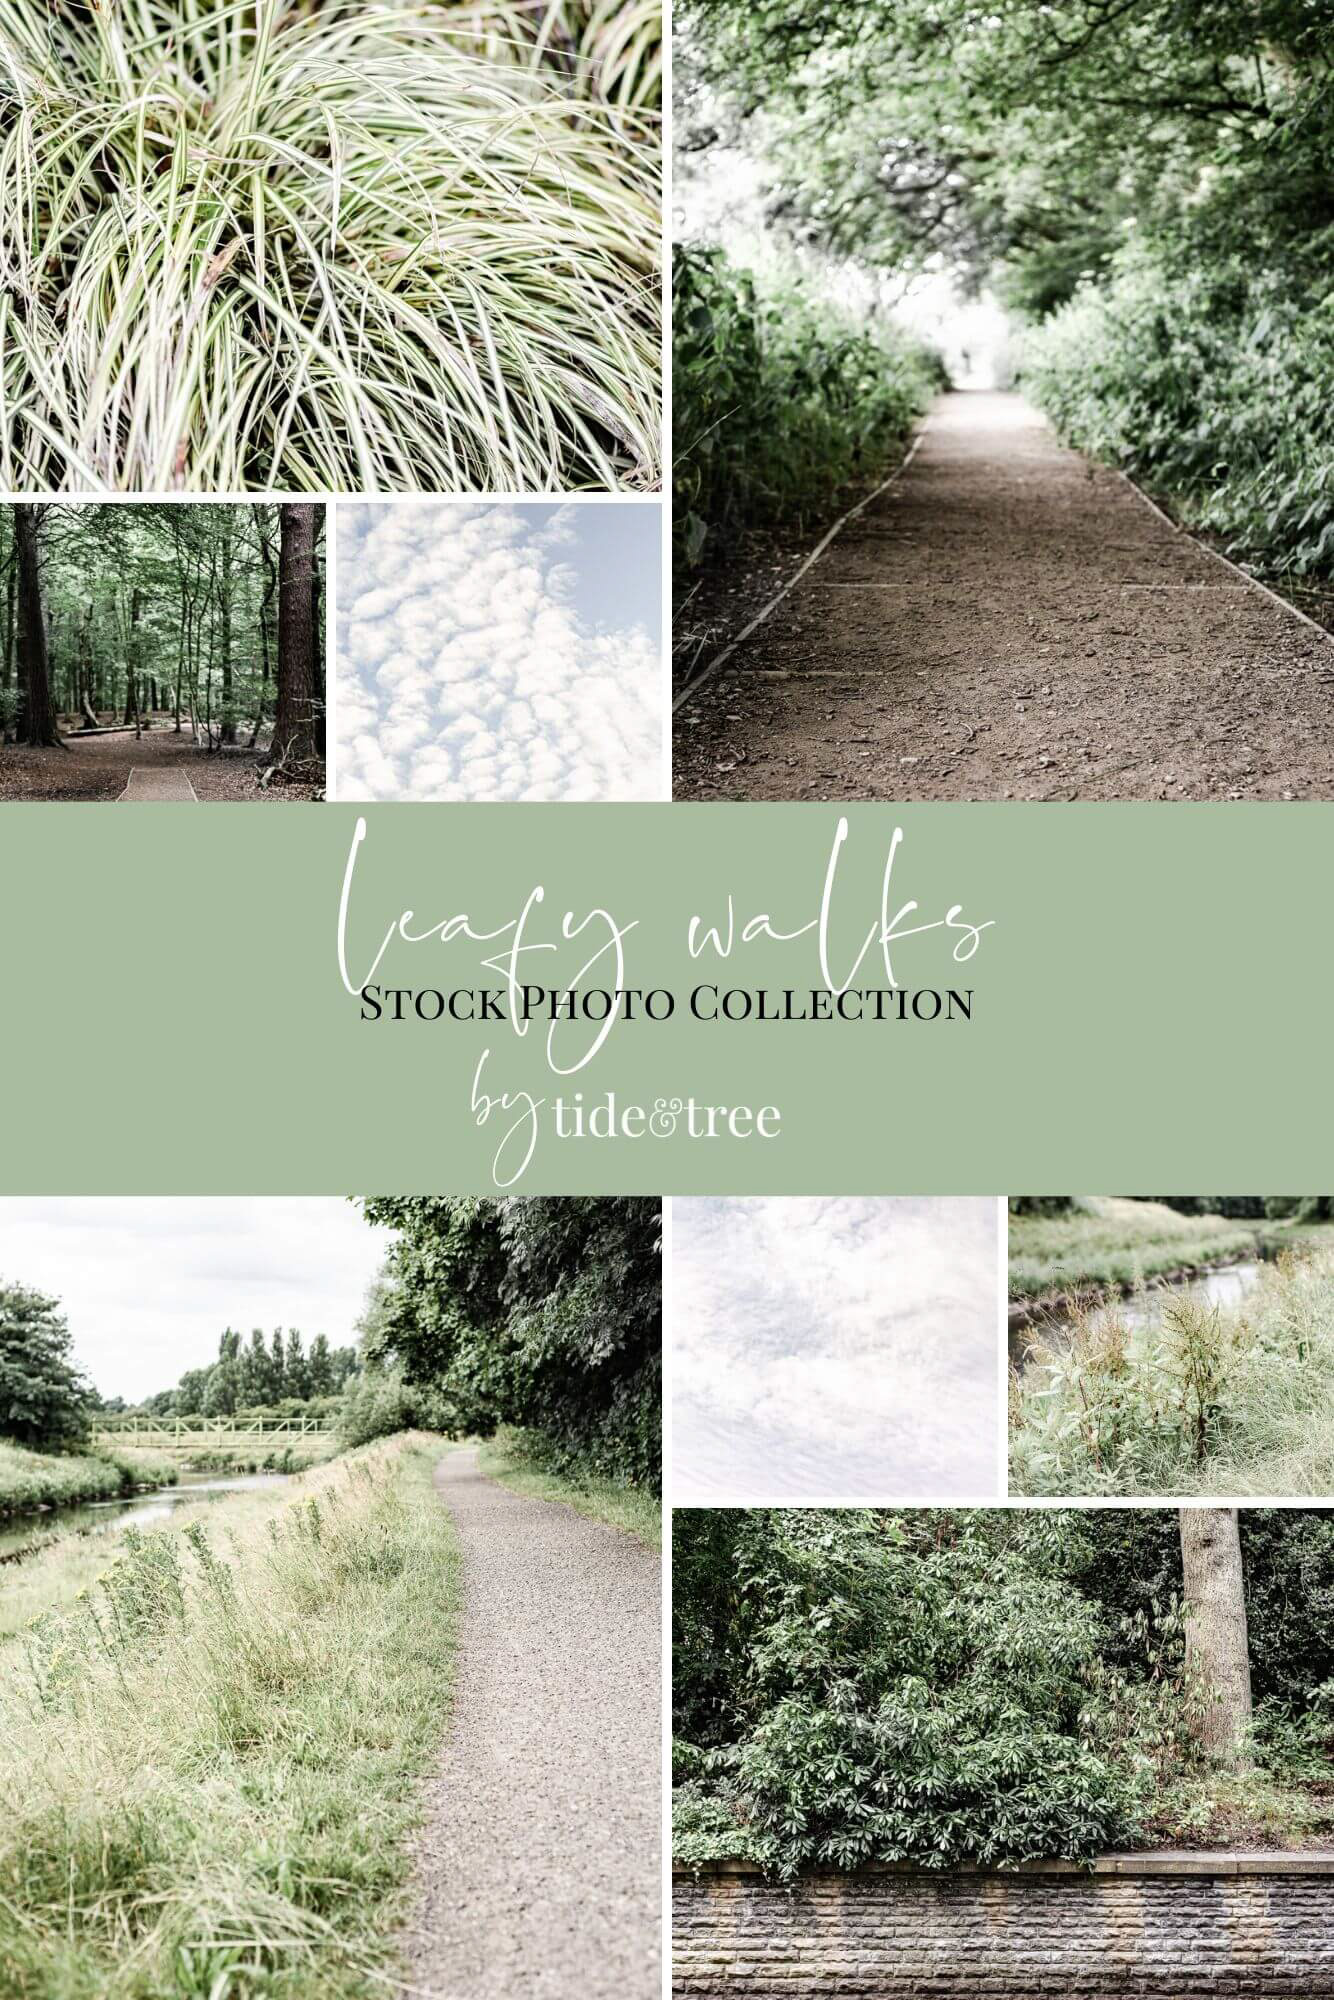 Leafy Walks Stock Image Collection